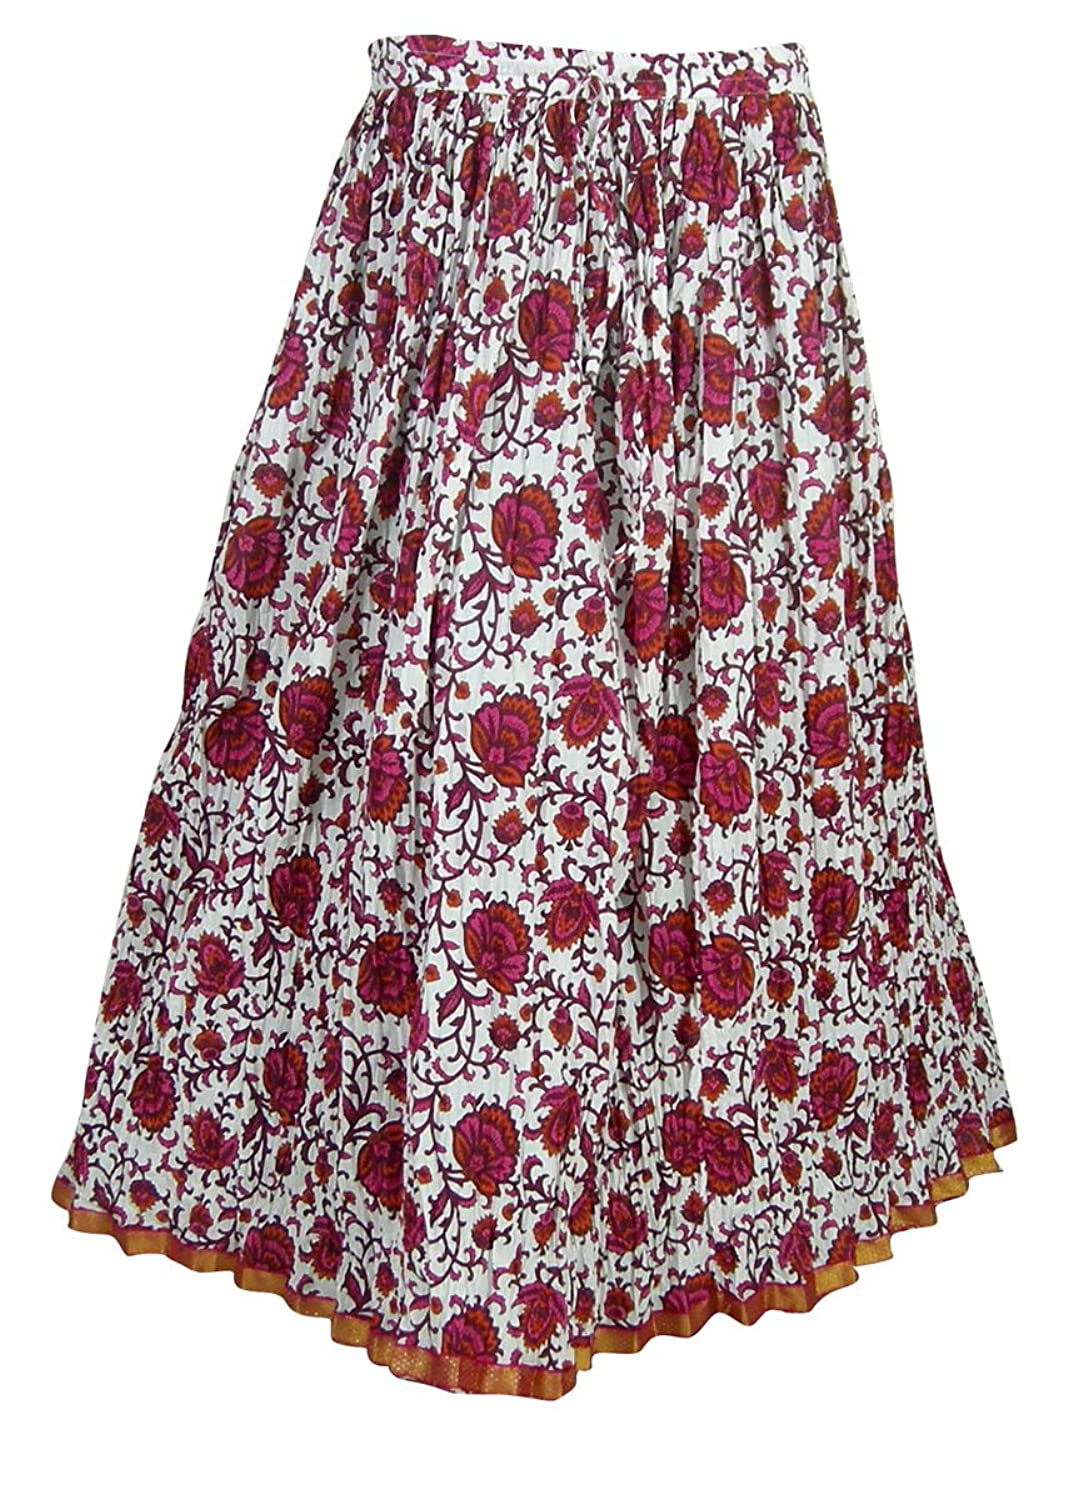 Printed Cotton Multicolor Summer Skirt India Clothes